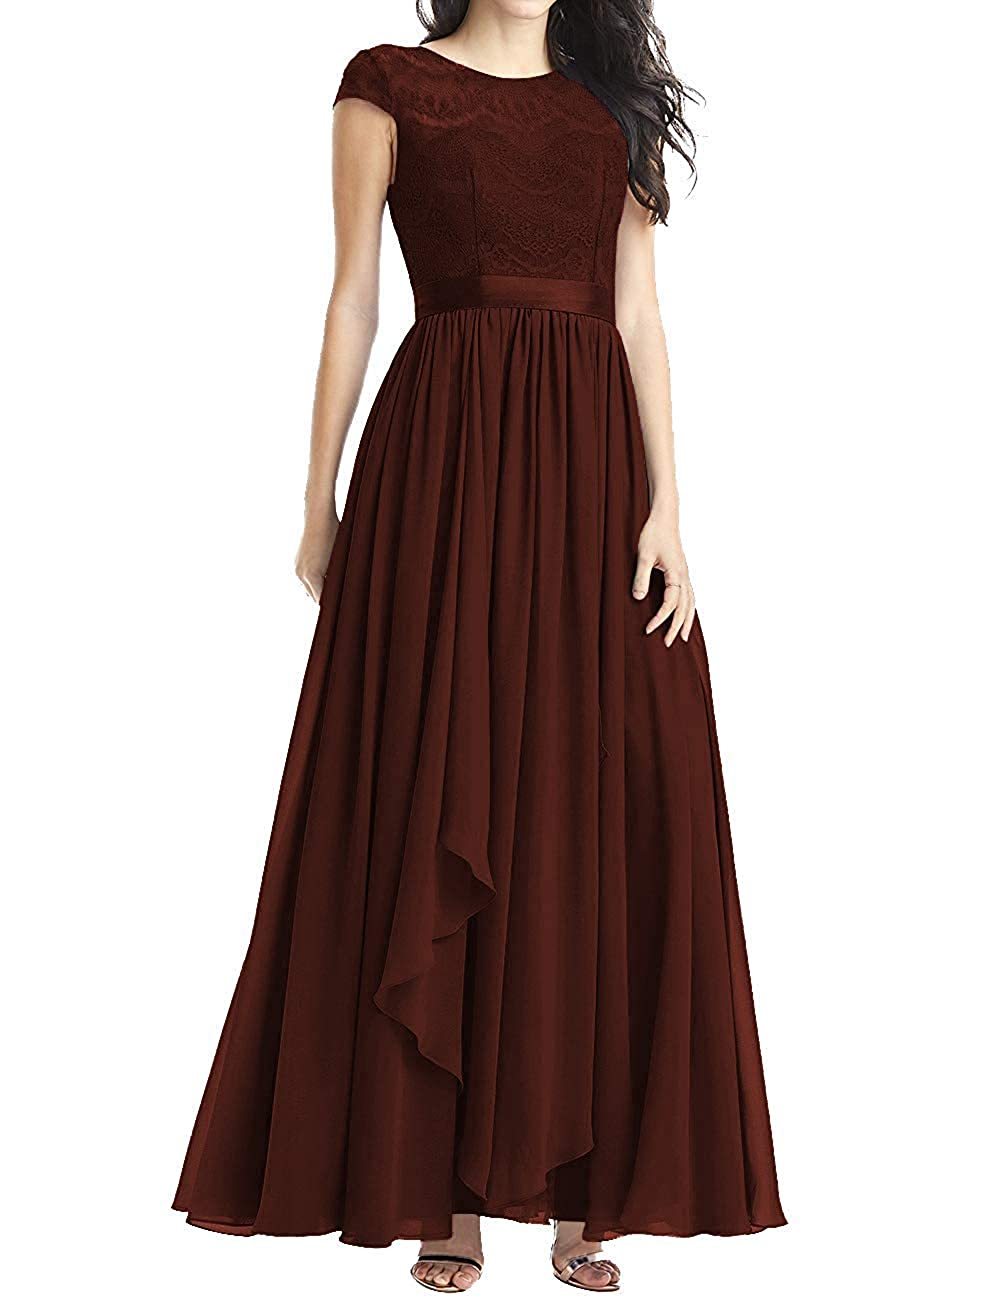 Maroon Mother of The Bride Dresses Plus Size Evening Dresses with Sleeves Formal Gowns for Women Evening Dress